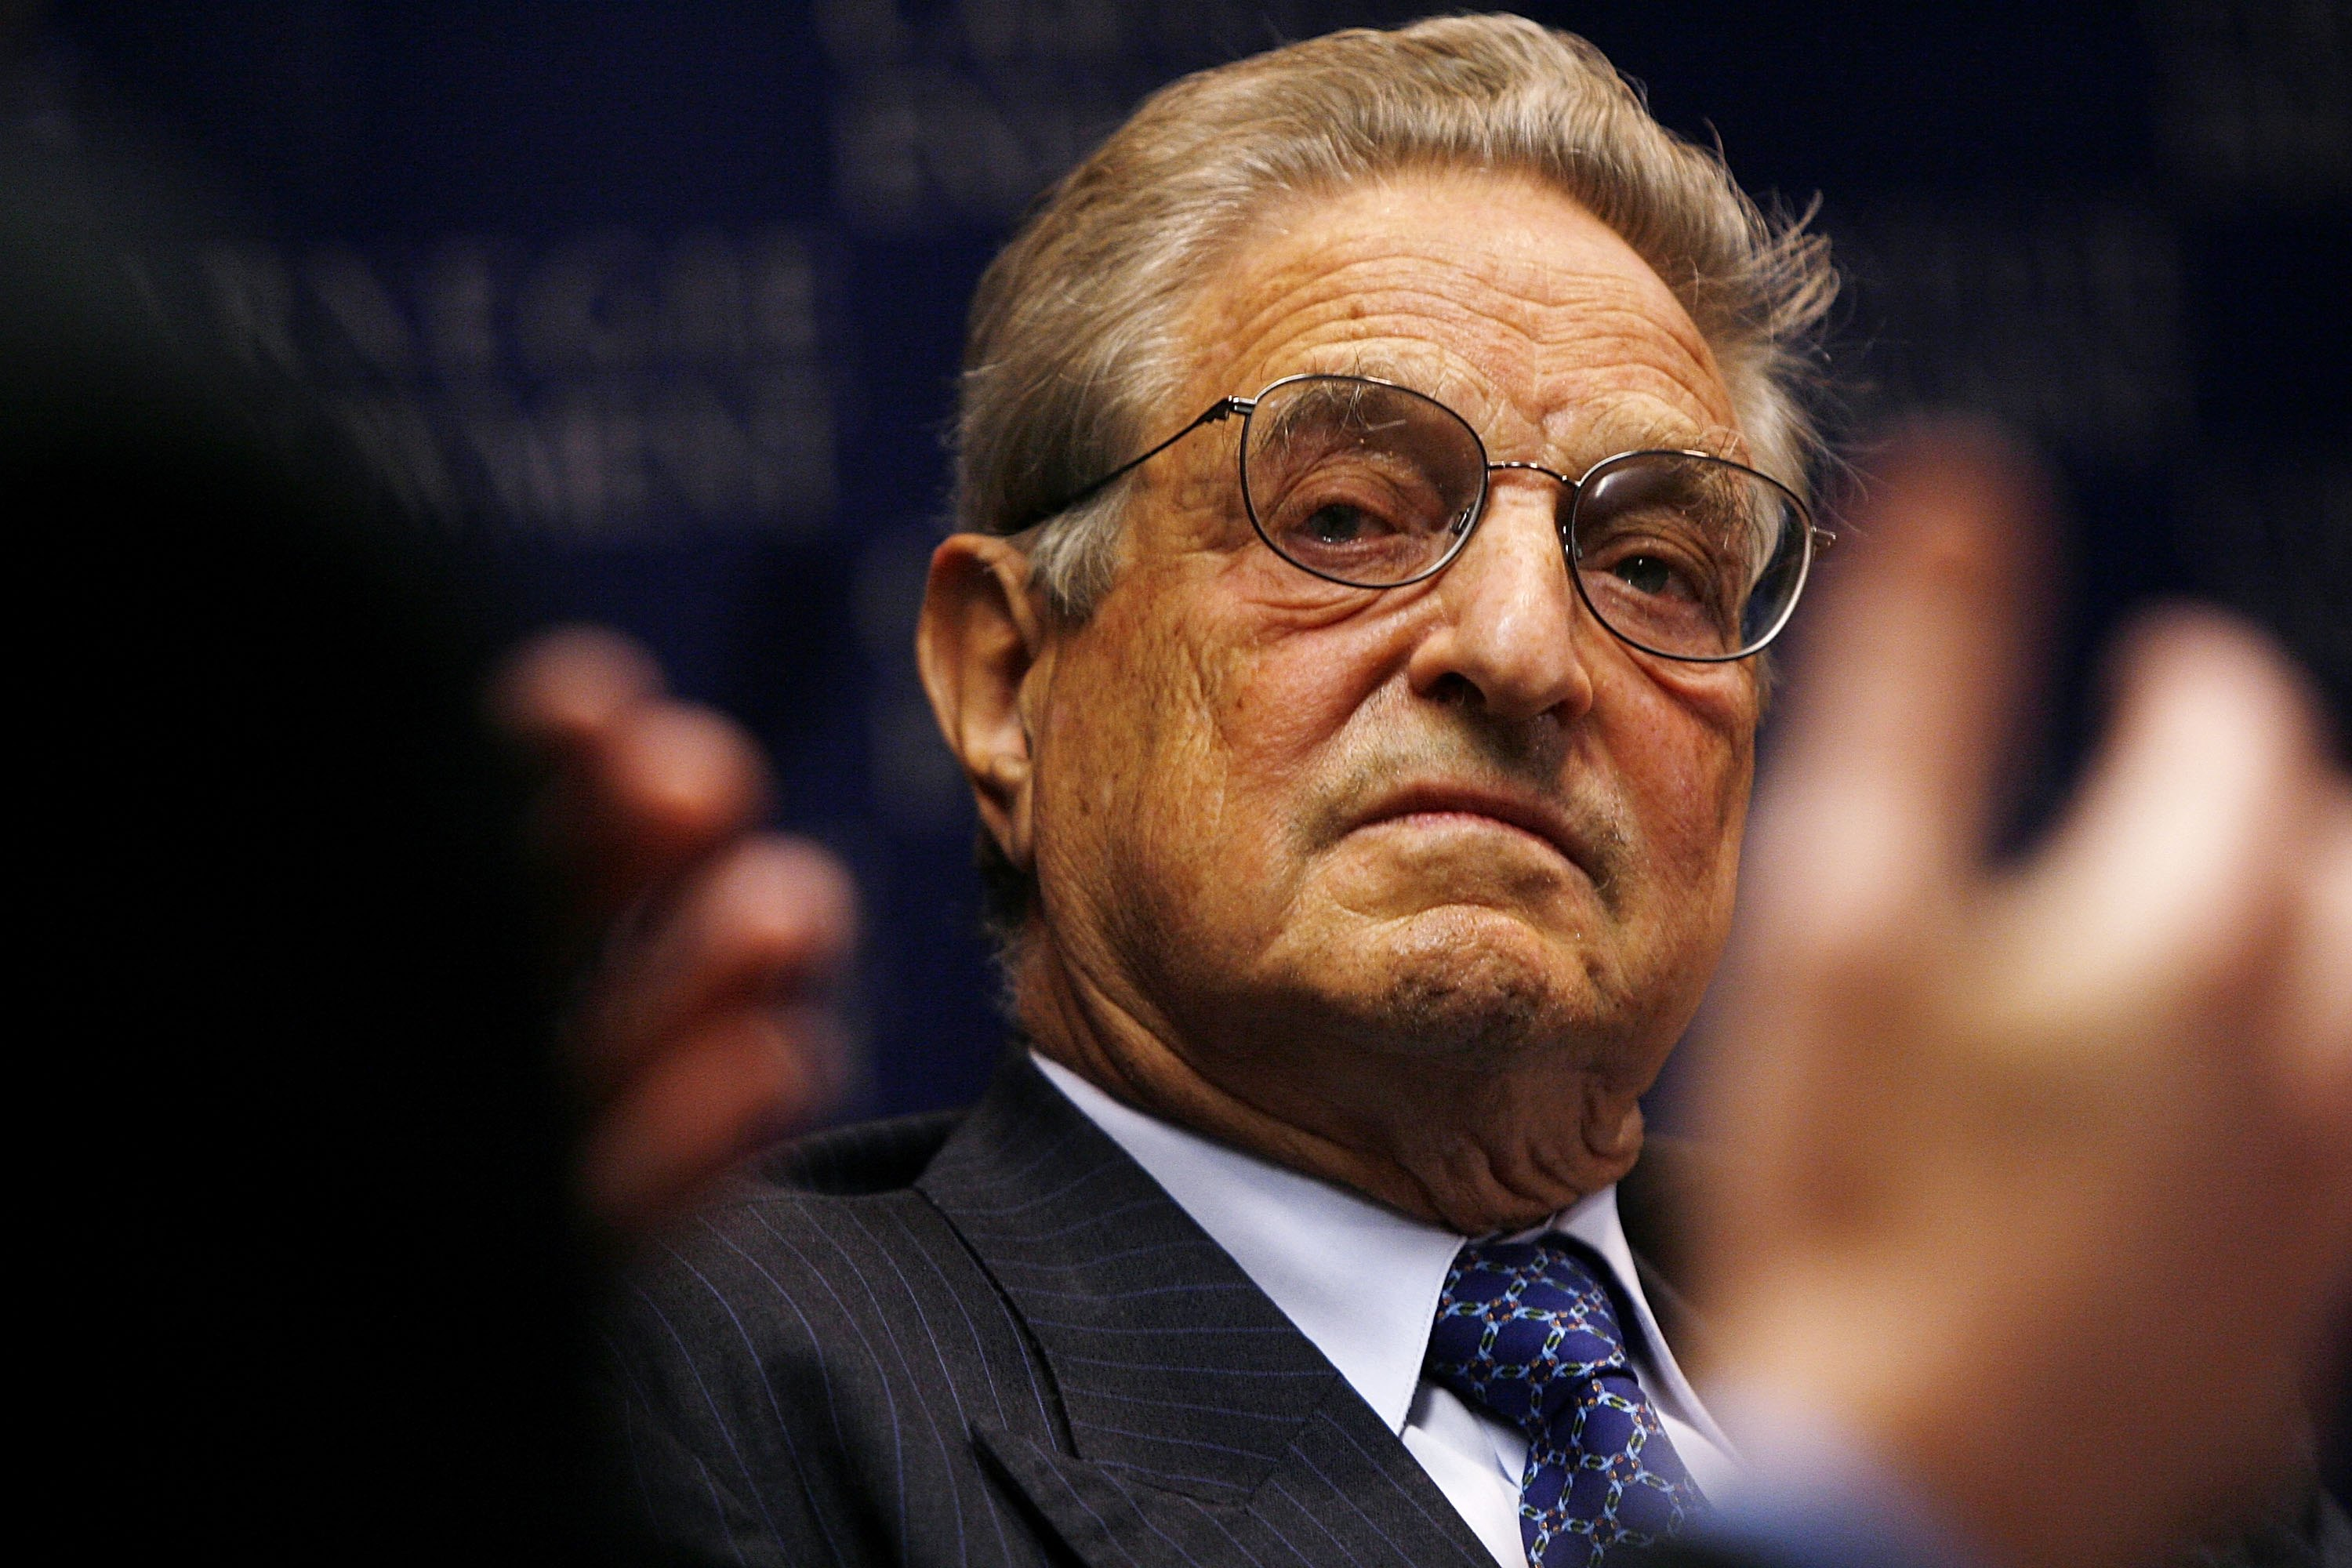 George Soros Speaks At Carnegie Endowment